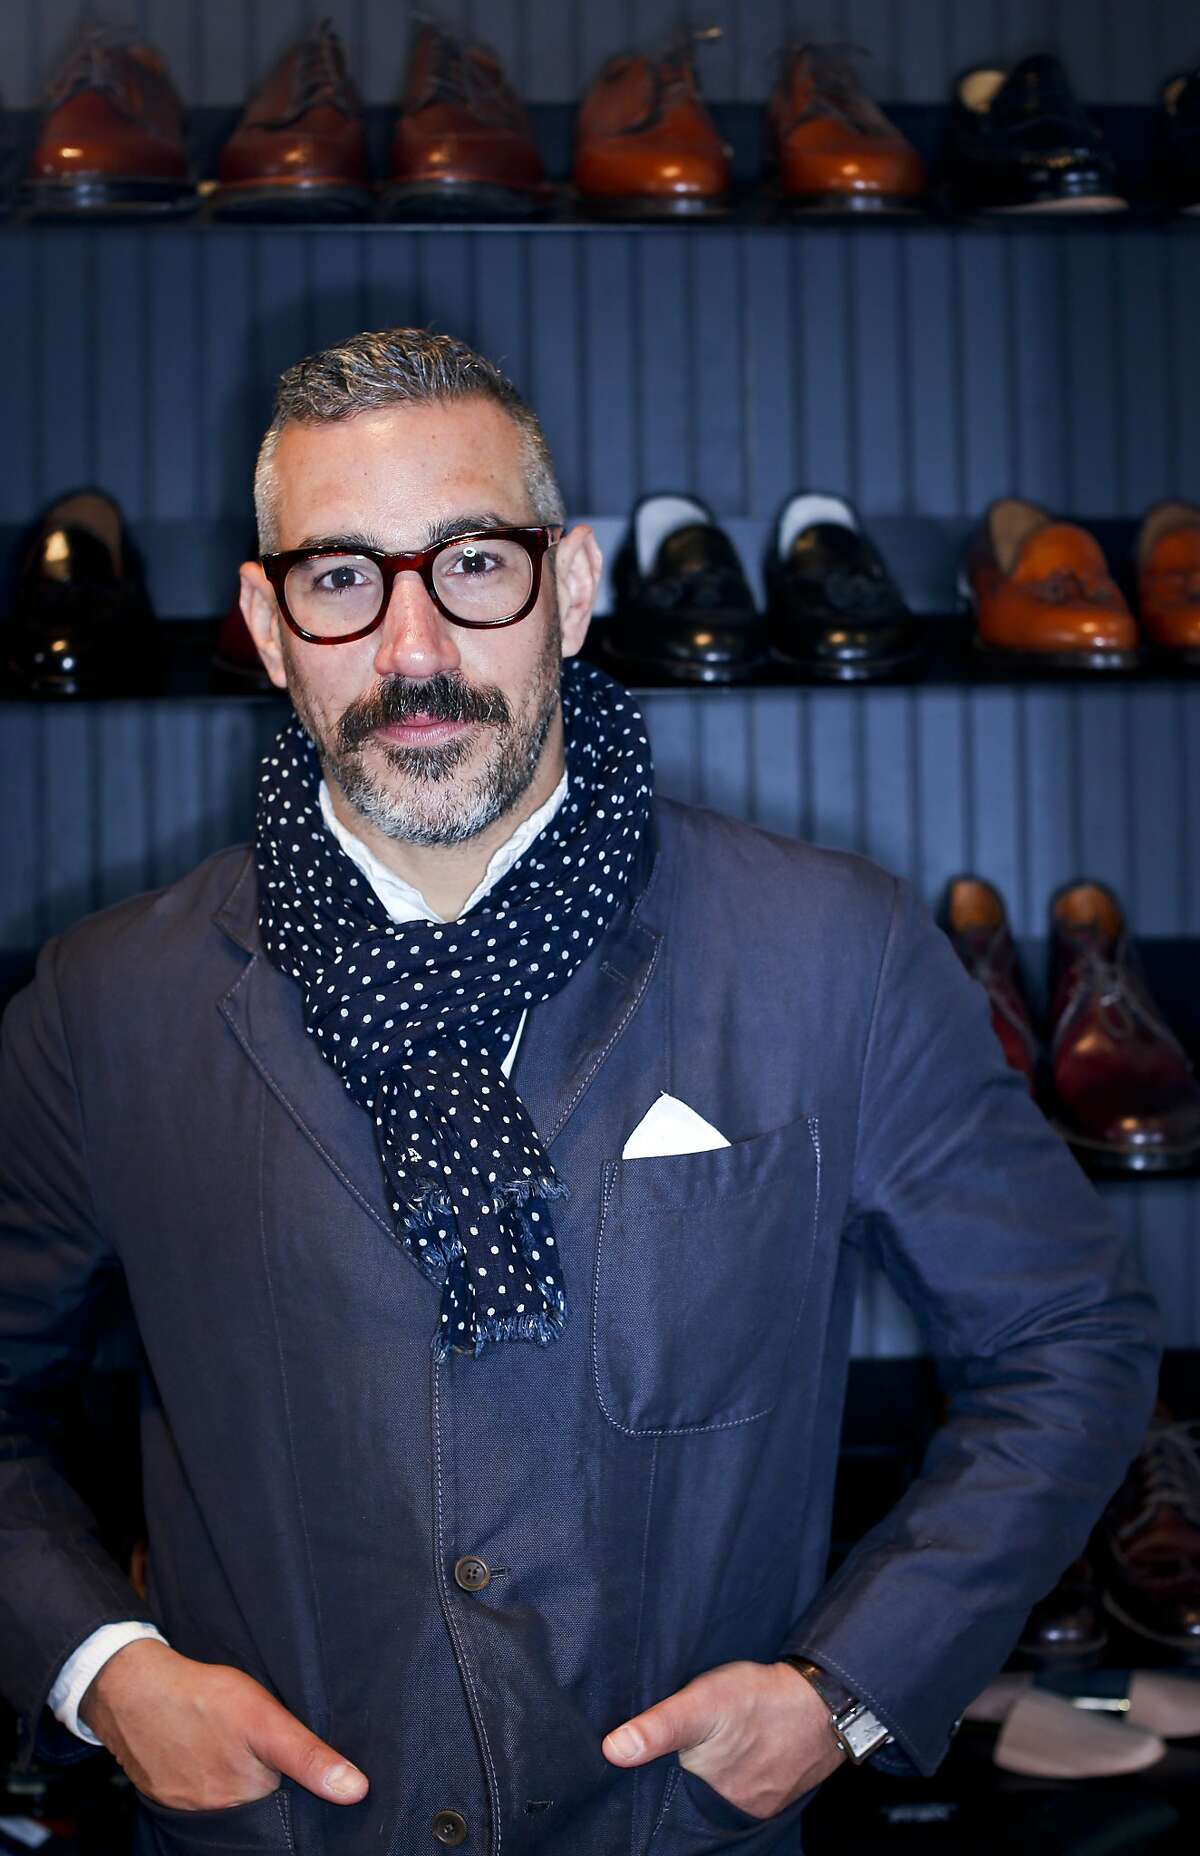 Unionmade founder Todd Barket started as a salesman at the Gap on Los Angeles' Melrose Avenue before rising to senior creative director of marketing at Old Navy. Click through the gallery to see other